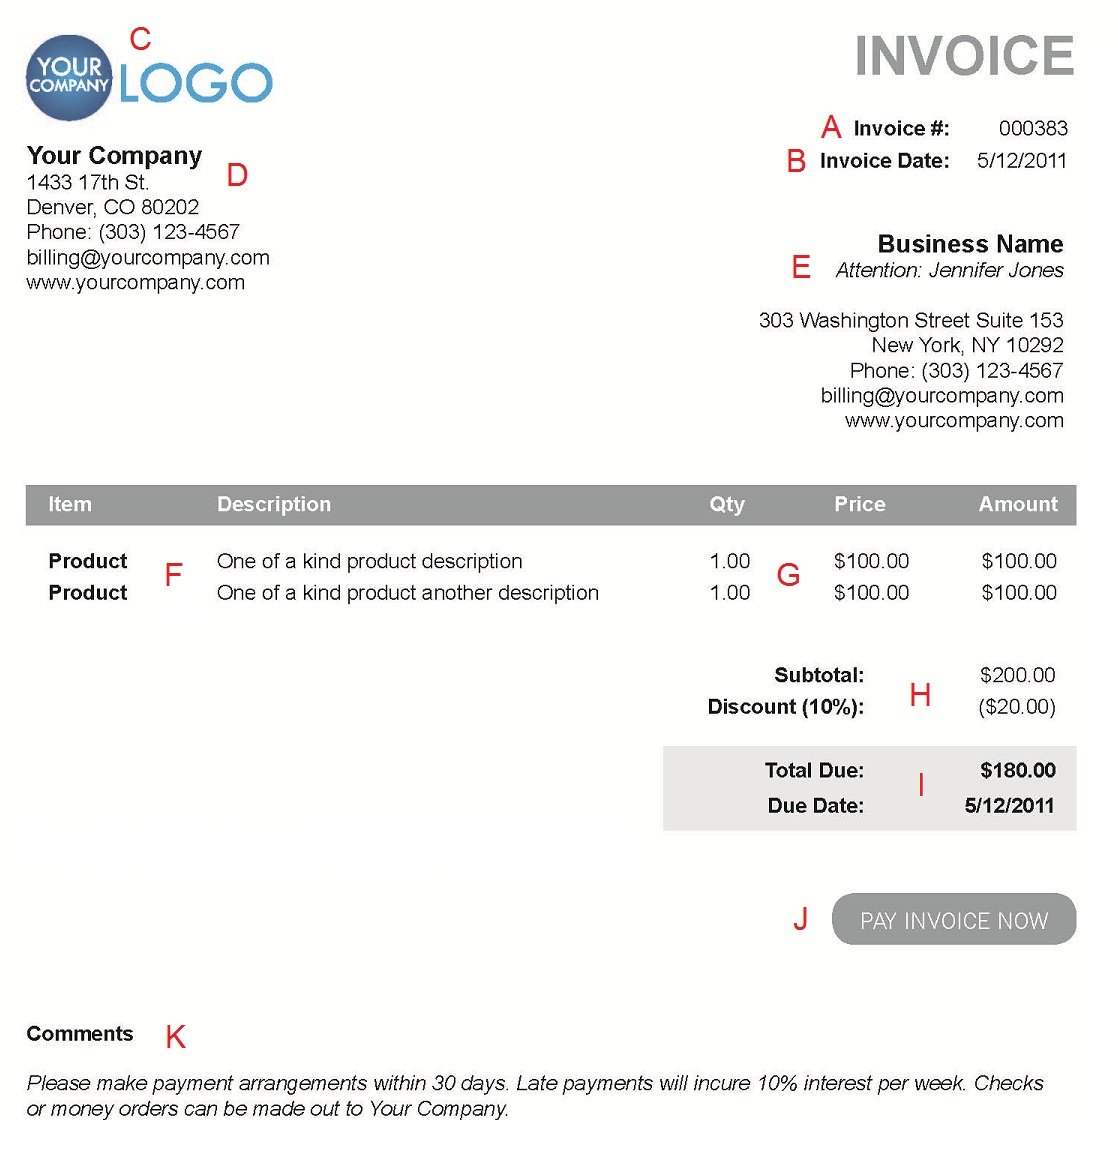 Hius  Stunning The  Different Sections Of An Electronic Payment Invoice With Great A  With Agreeable Gumbo Receipt Also Receipt Antonym In Addition Best Receipt Software And Labor Receipt Template As Well As Carbon Copy Receipt Additionally Sponsorship Receipt Template From Paysimplecom With Hius  Great The  Different Sections Of An Electronic Payment Invoice With Agreeable A  And Stunning Gumbo Receipt Also Receipt Antonym In Addition Best Receipt Software From Paysimplecom